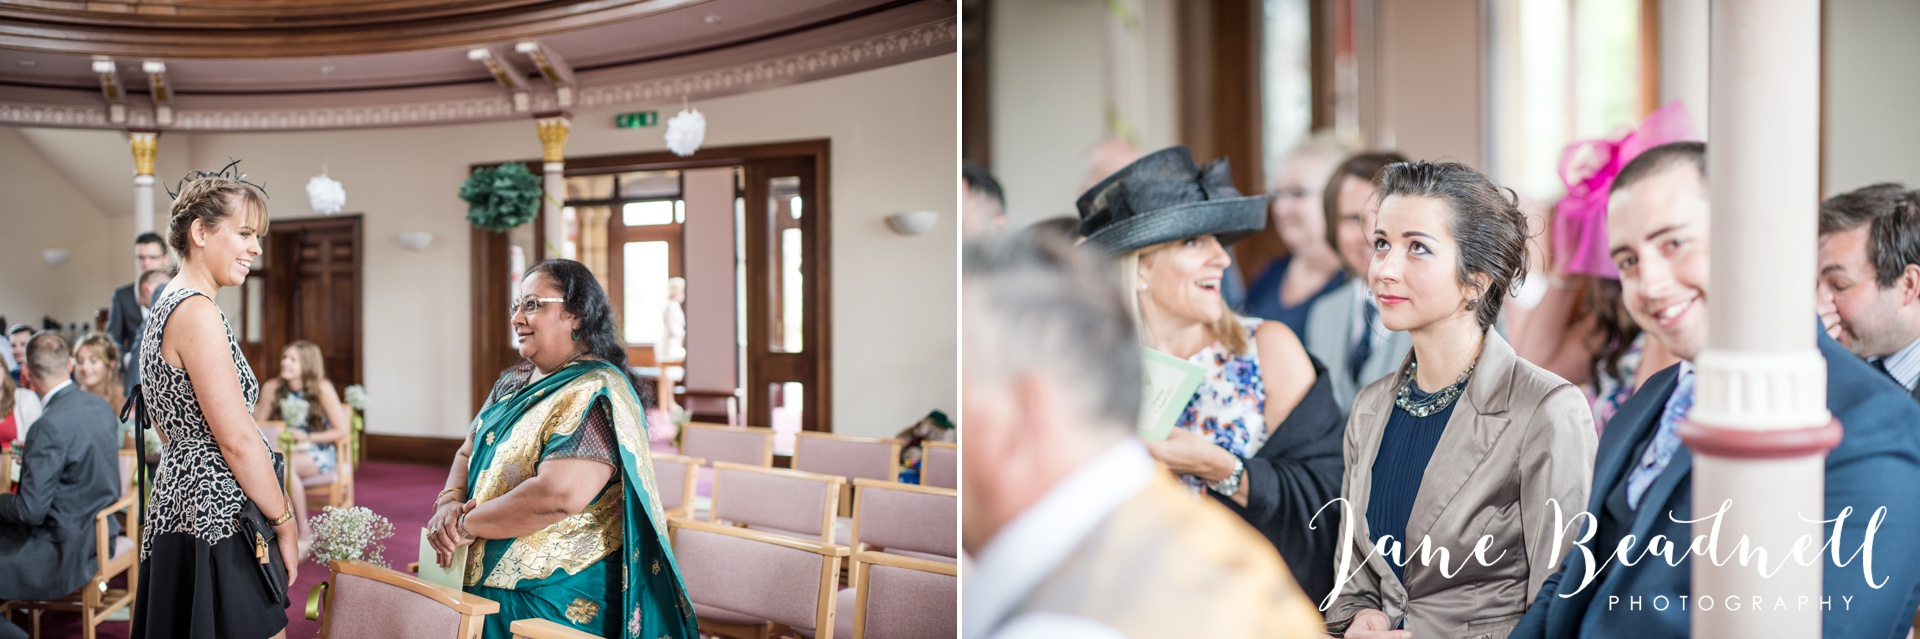 Jane Beadnell fine art wedding photographer The Old Deanery Ripon_0020